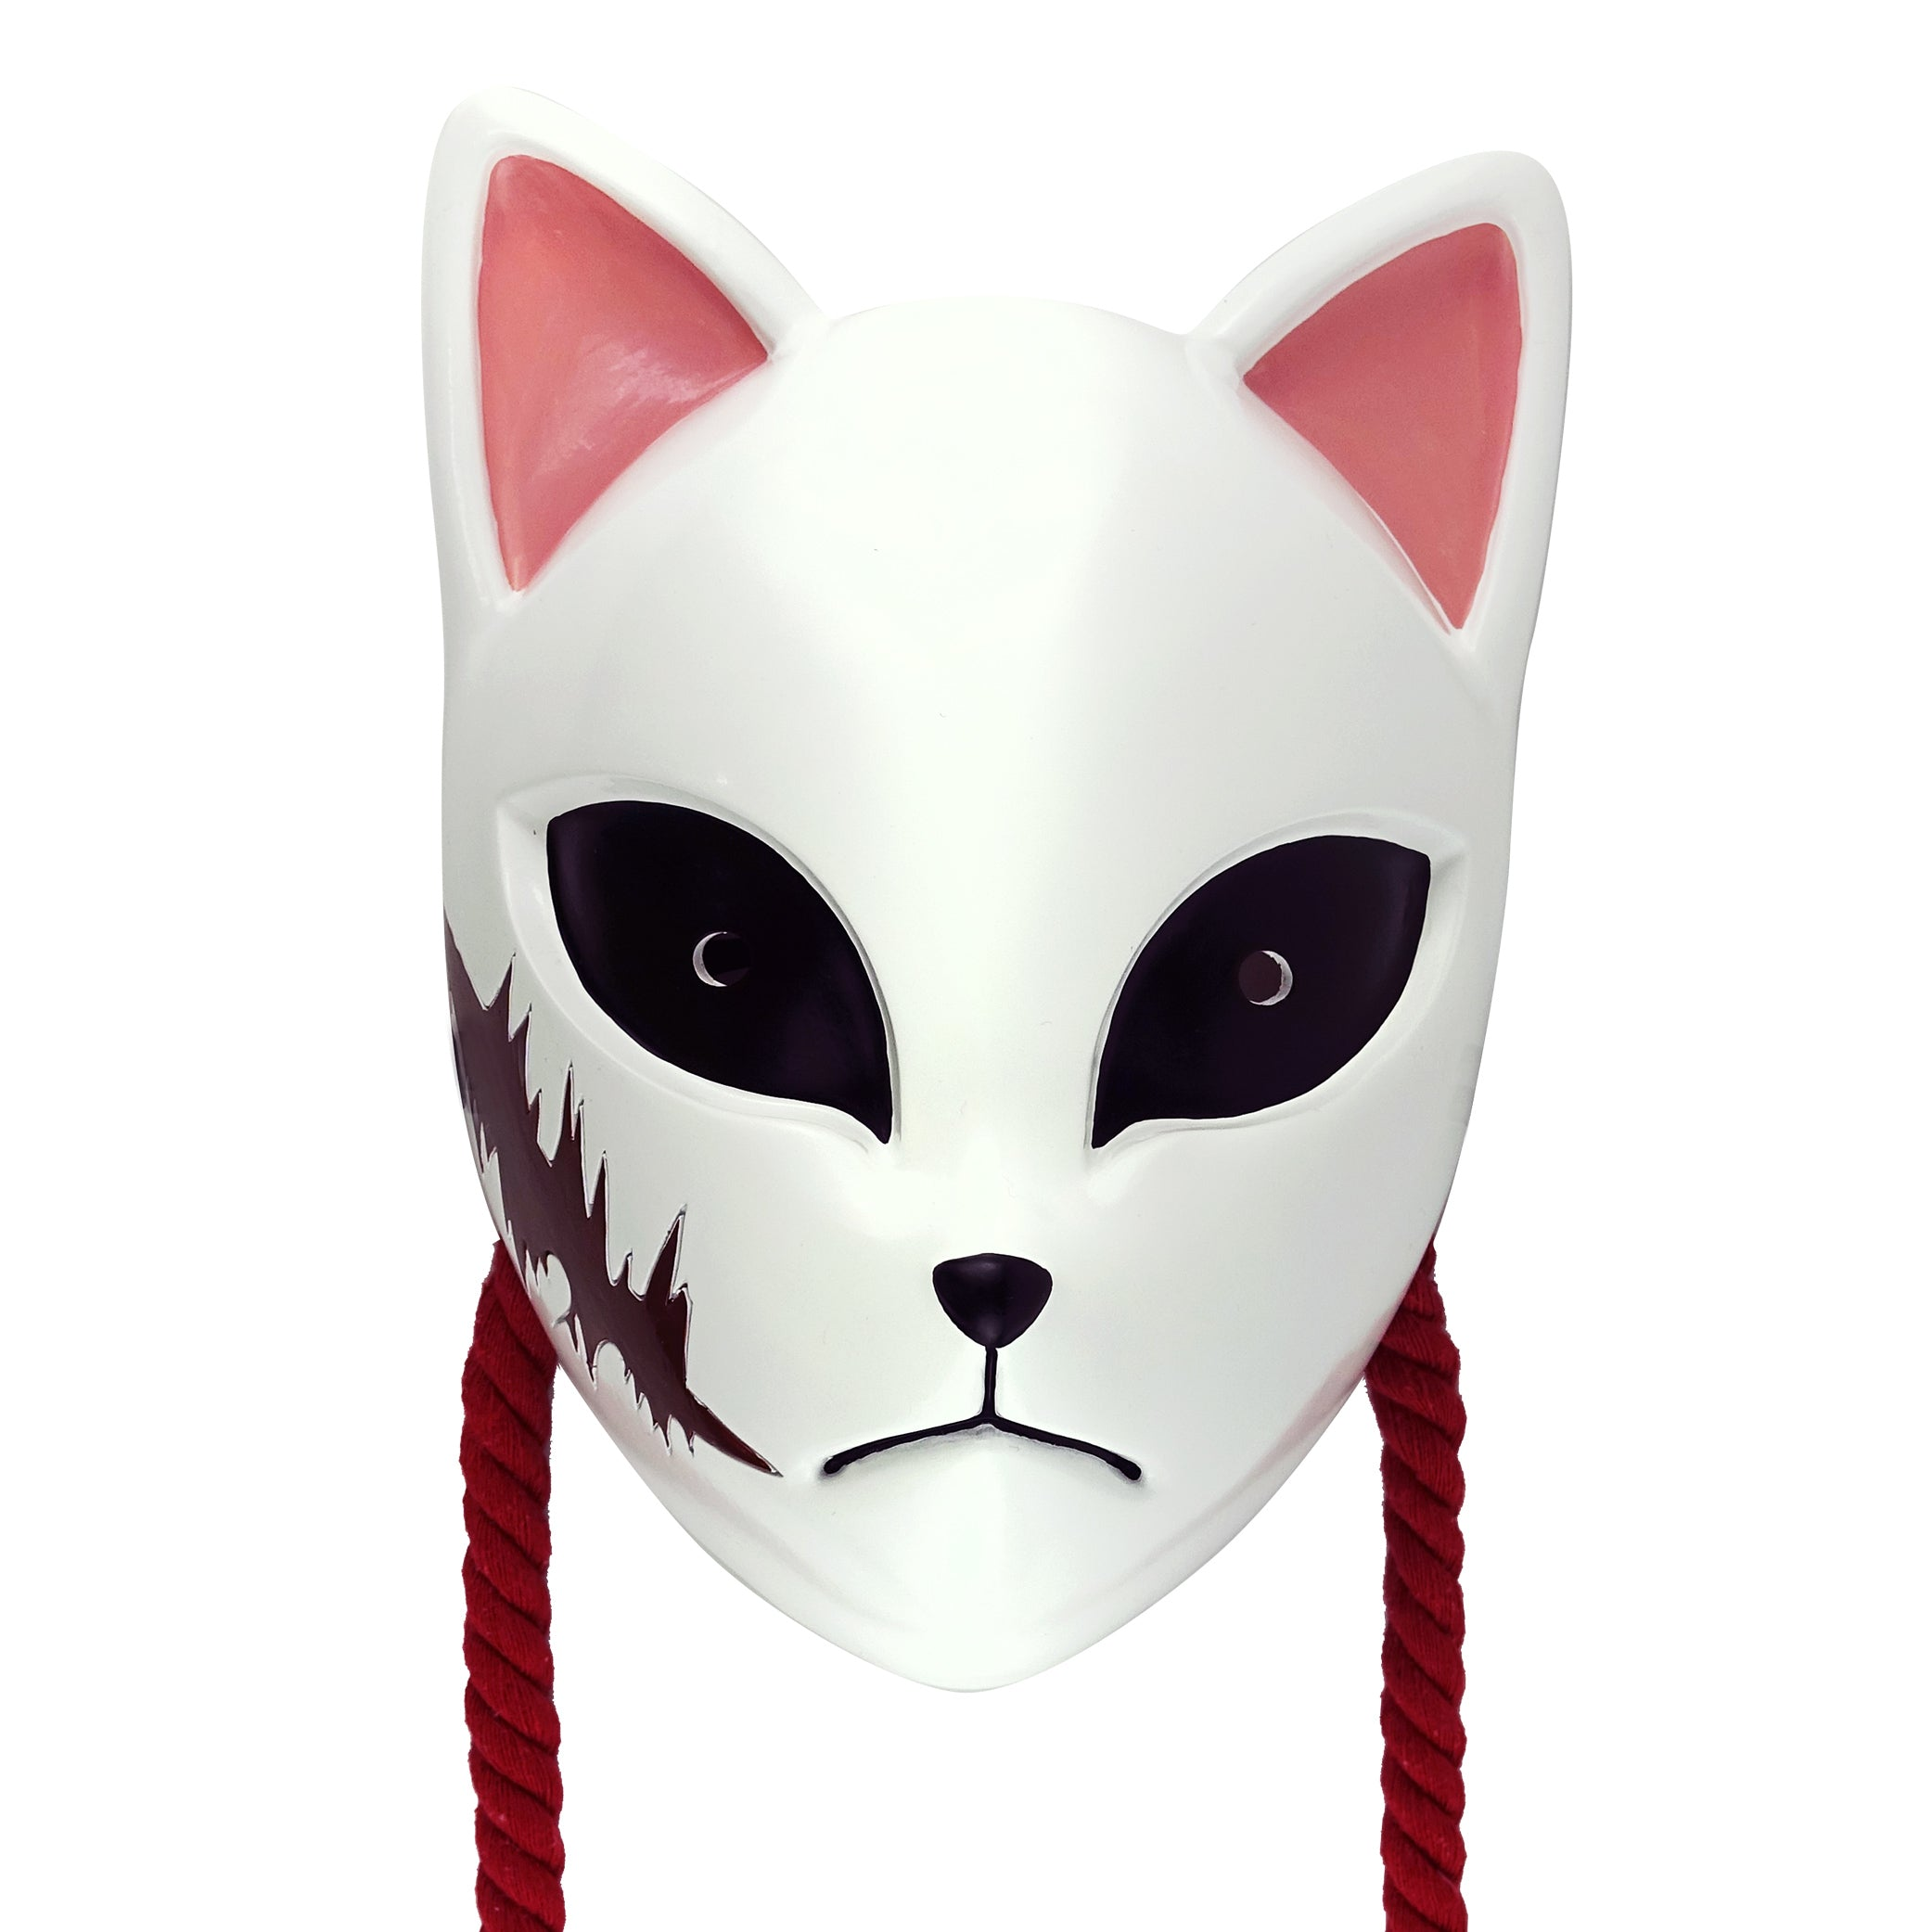 Demon Slayer Series Mask Kamado Tanjirou/Hashibira Inosuke/Sabito and Makomo Mask For Halloween Costume Accessory